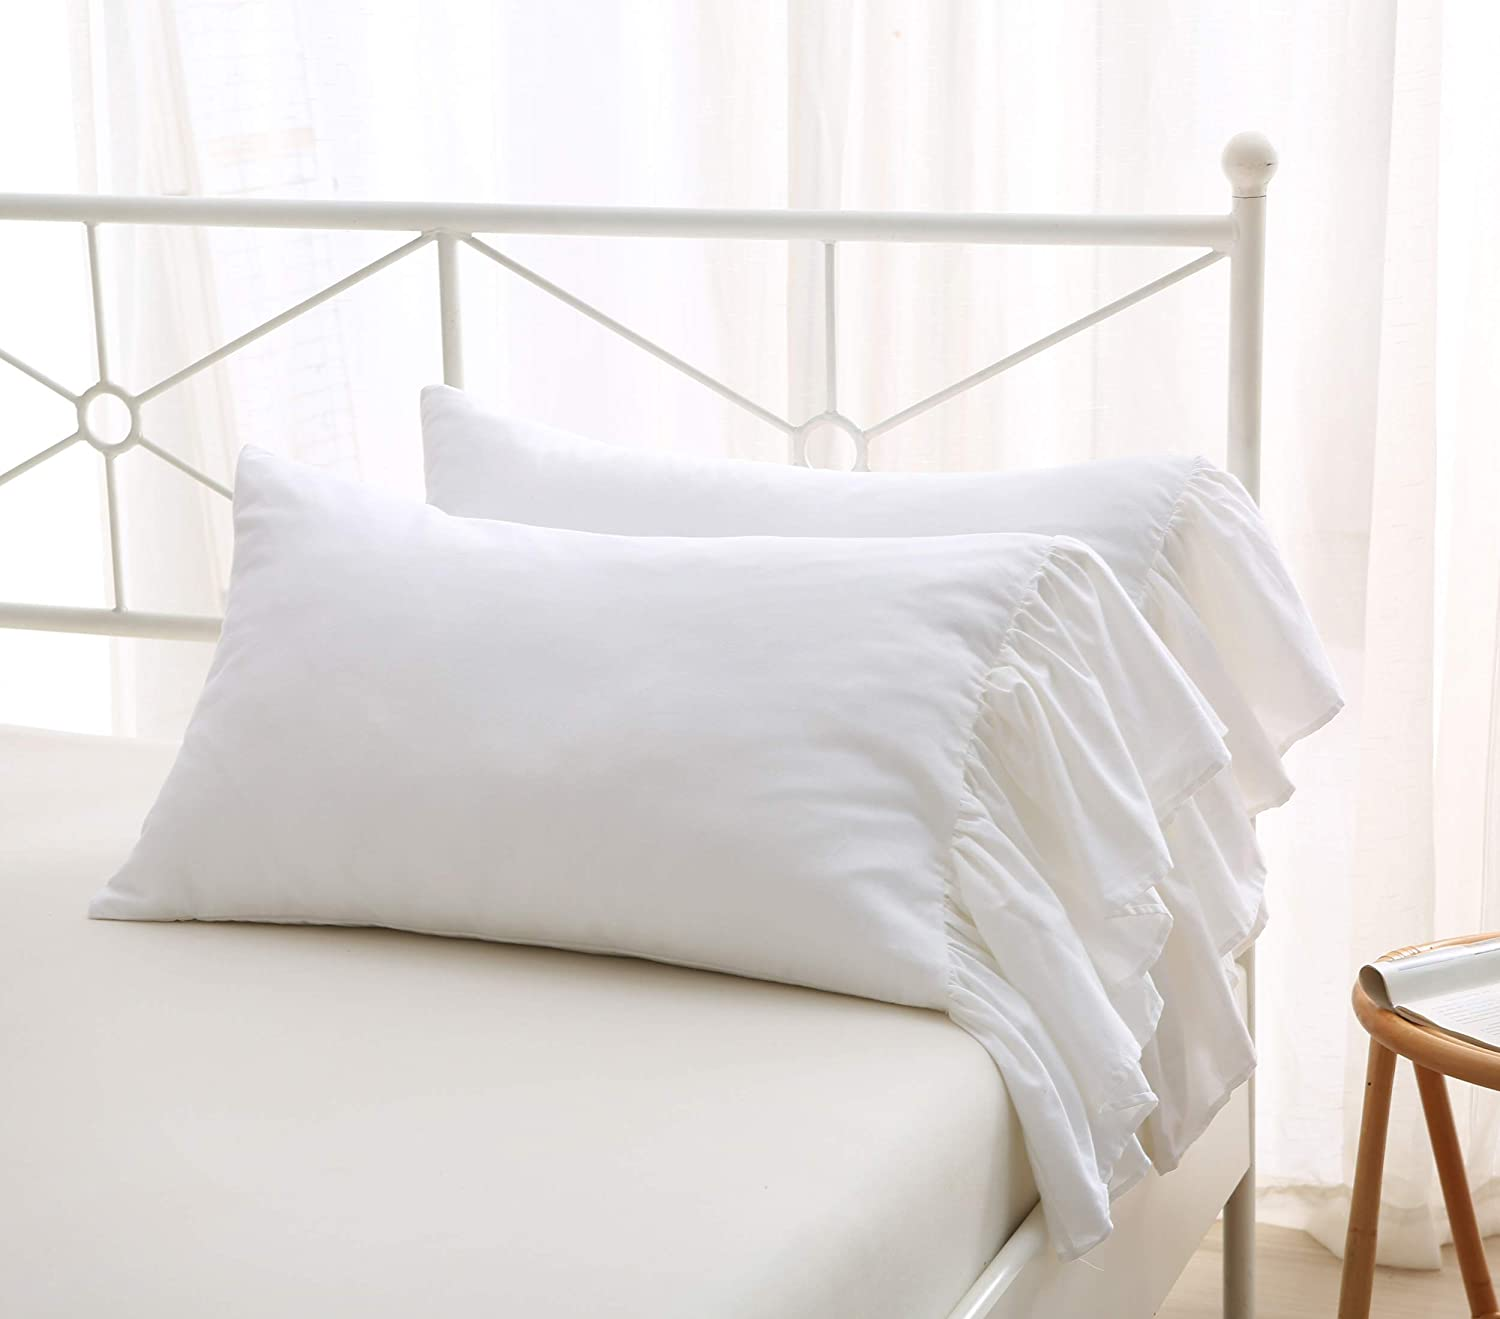 Meaning4 White Bed Pillow Covers Shams Cases with Long Ruffles Standard Size Cotton